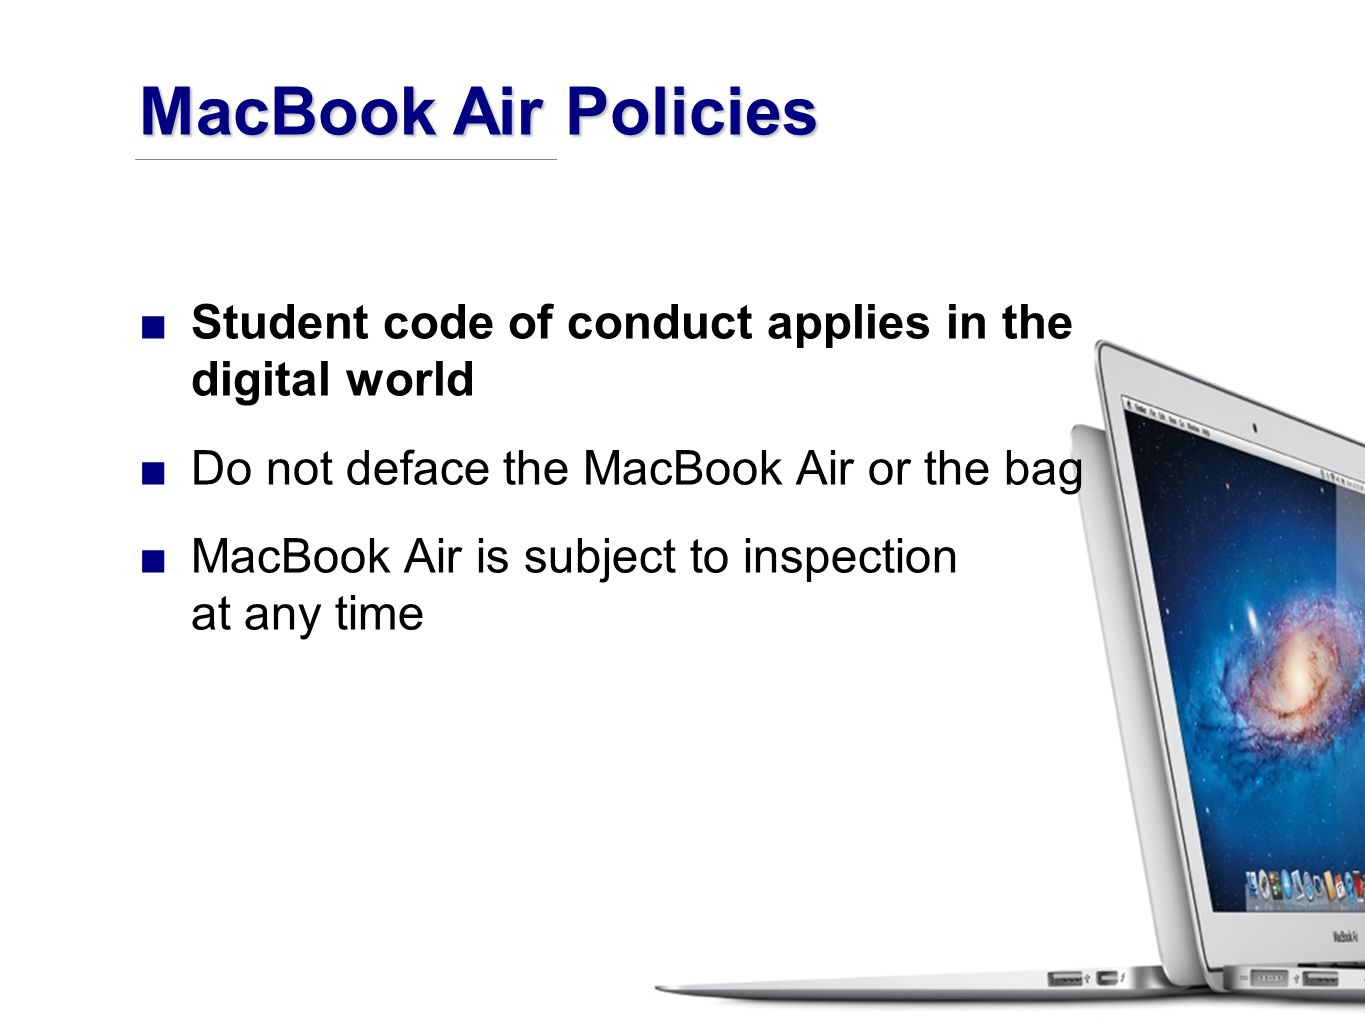 ■Student code of conduct applies in the digital world ■Do not deface the MacBook Air or the bag ■MacBook Air is subject to inspection at any time MacBook Air Policies